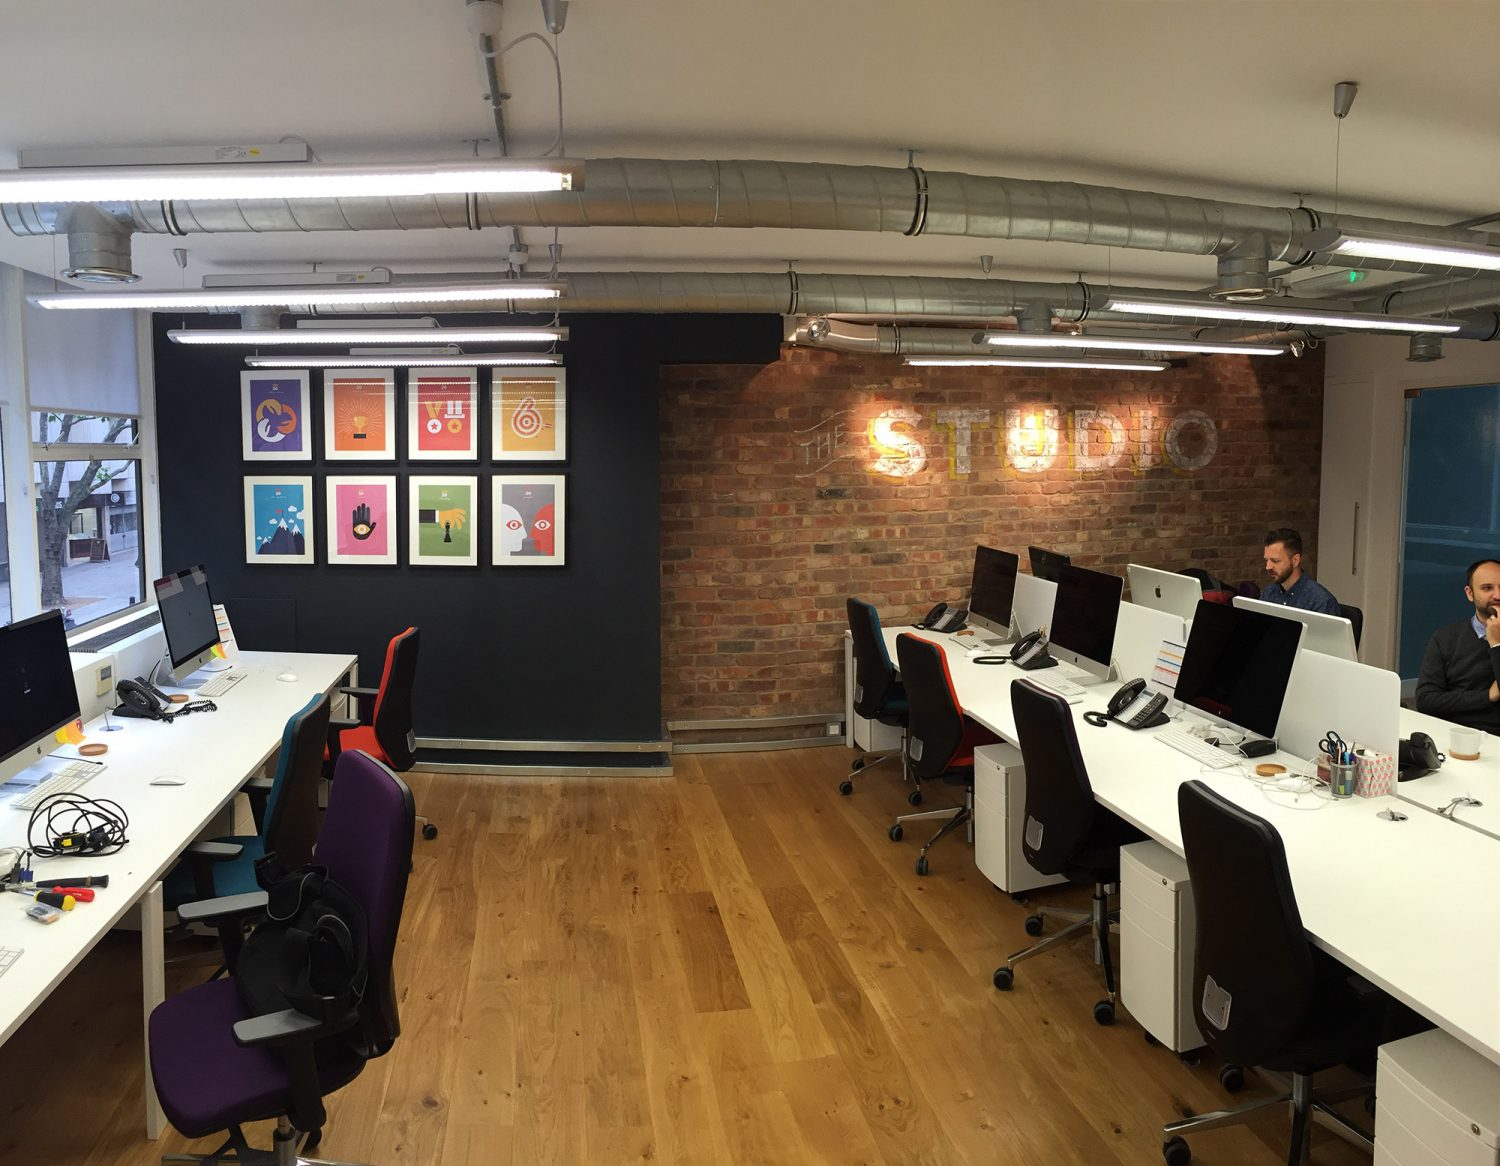 open plan office space with colourful images